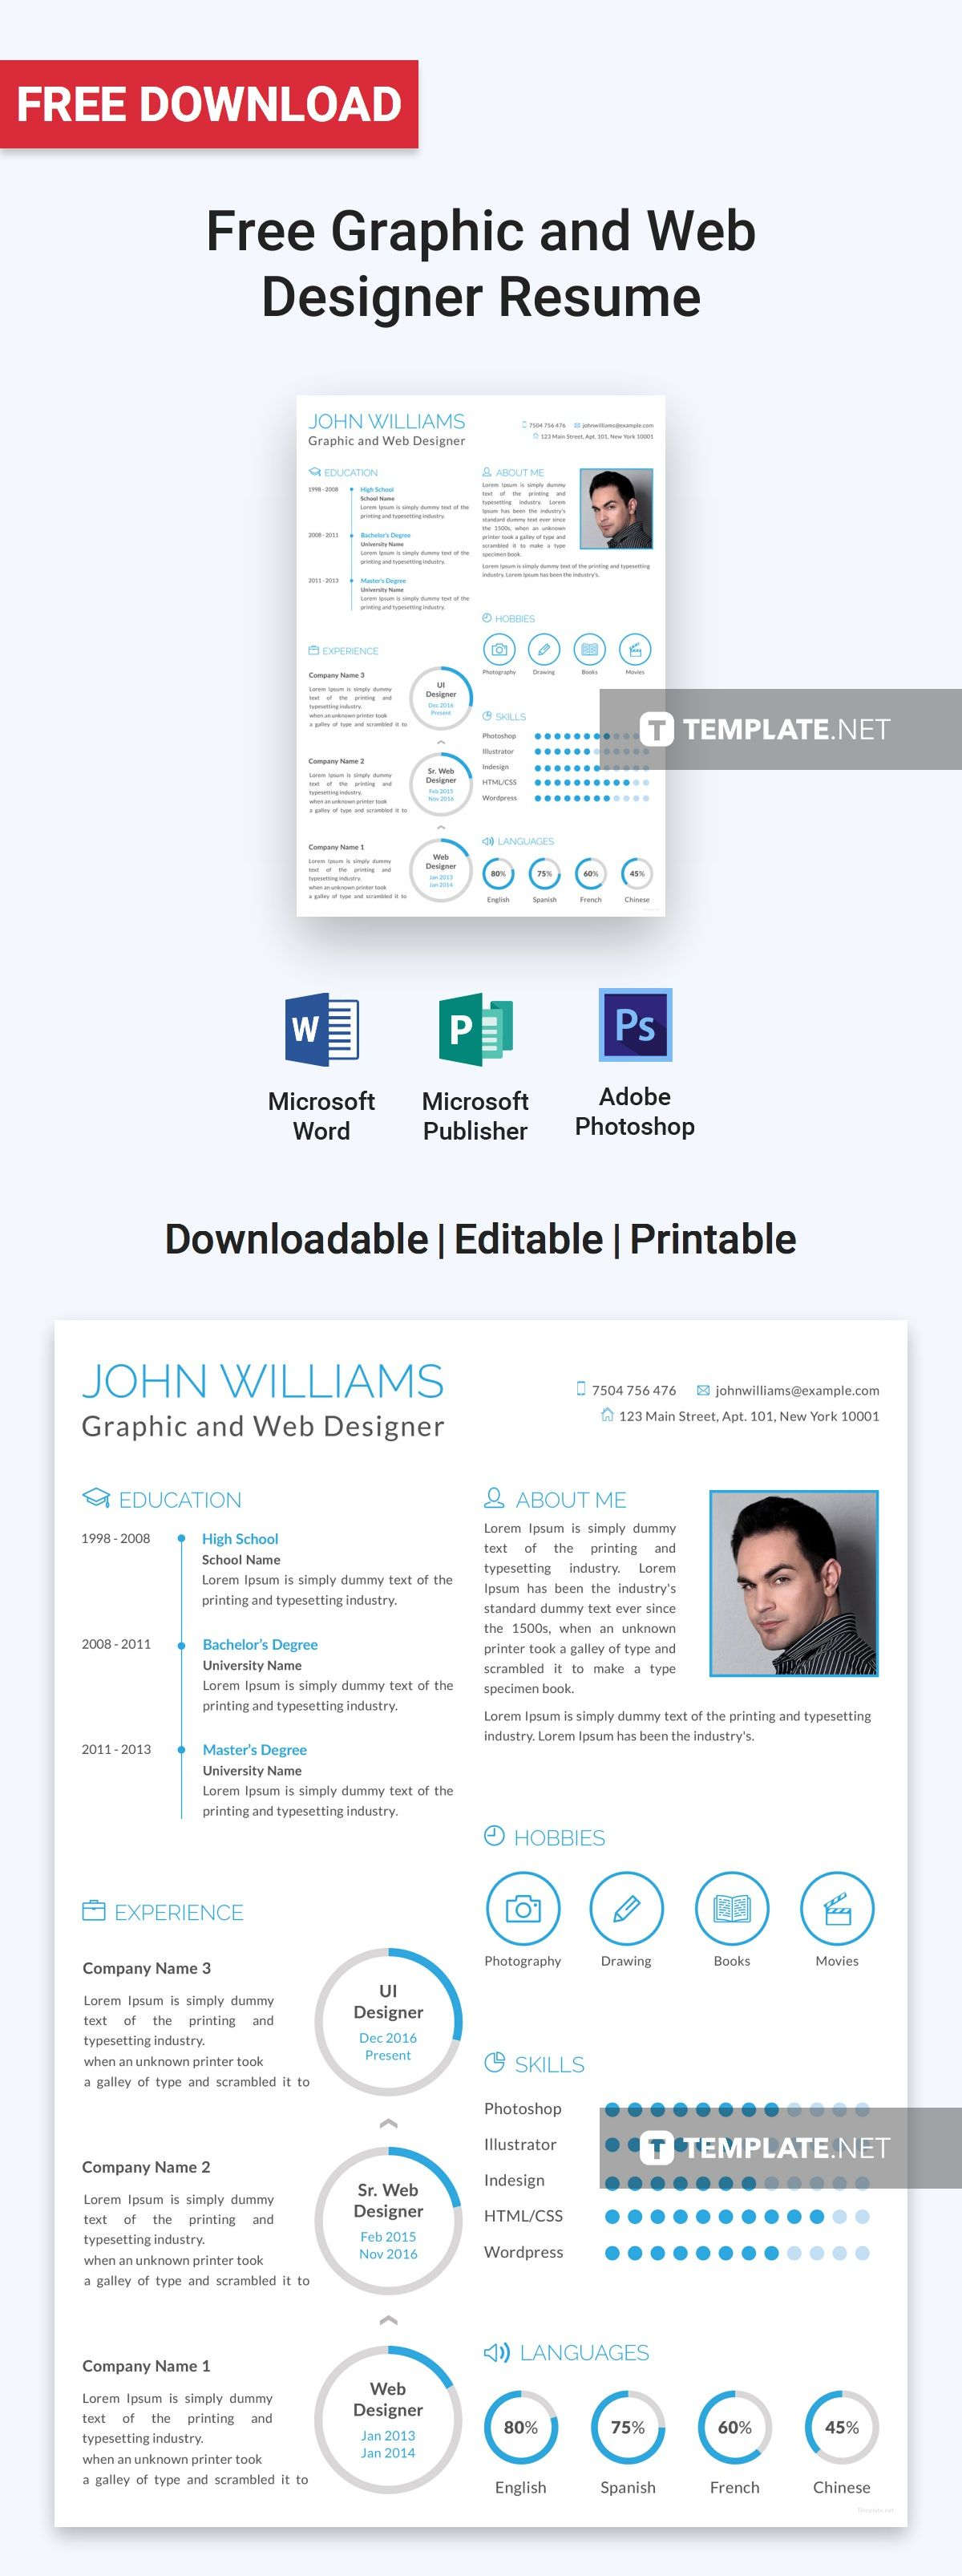 Graphic And Web Designer Resume Template Free Psd Word Apple Pages Publisher Template Net Graphic Design Resume Web Designer Resume Graphic Design Resume Template